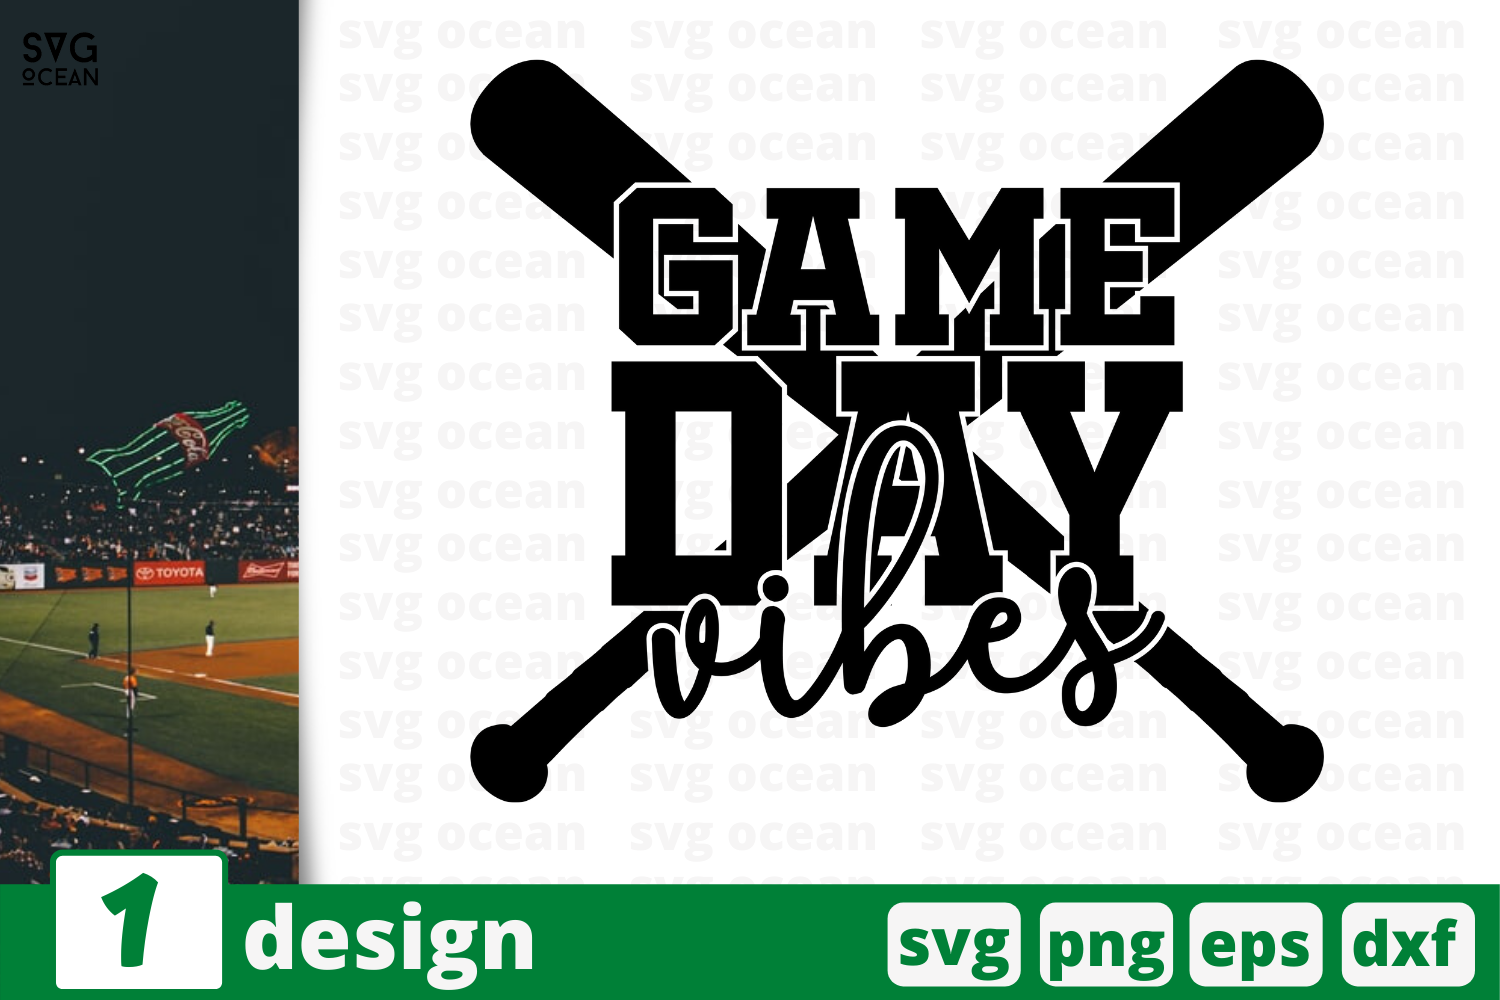 1 Game Day Vibes Svg Bundle Graphic By Svgocean Creative Fabrica